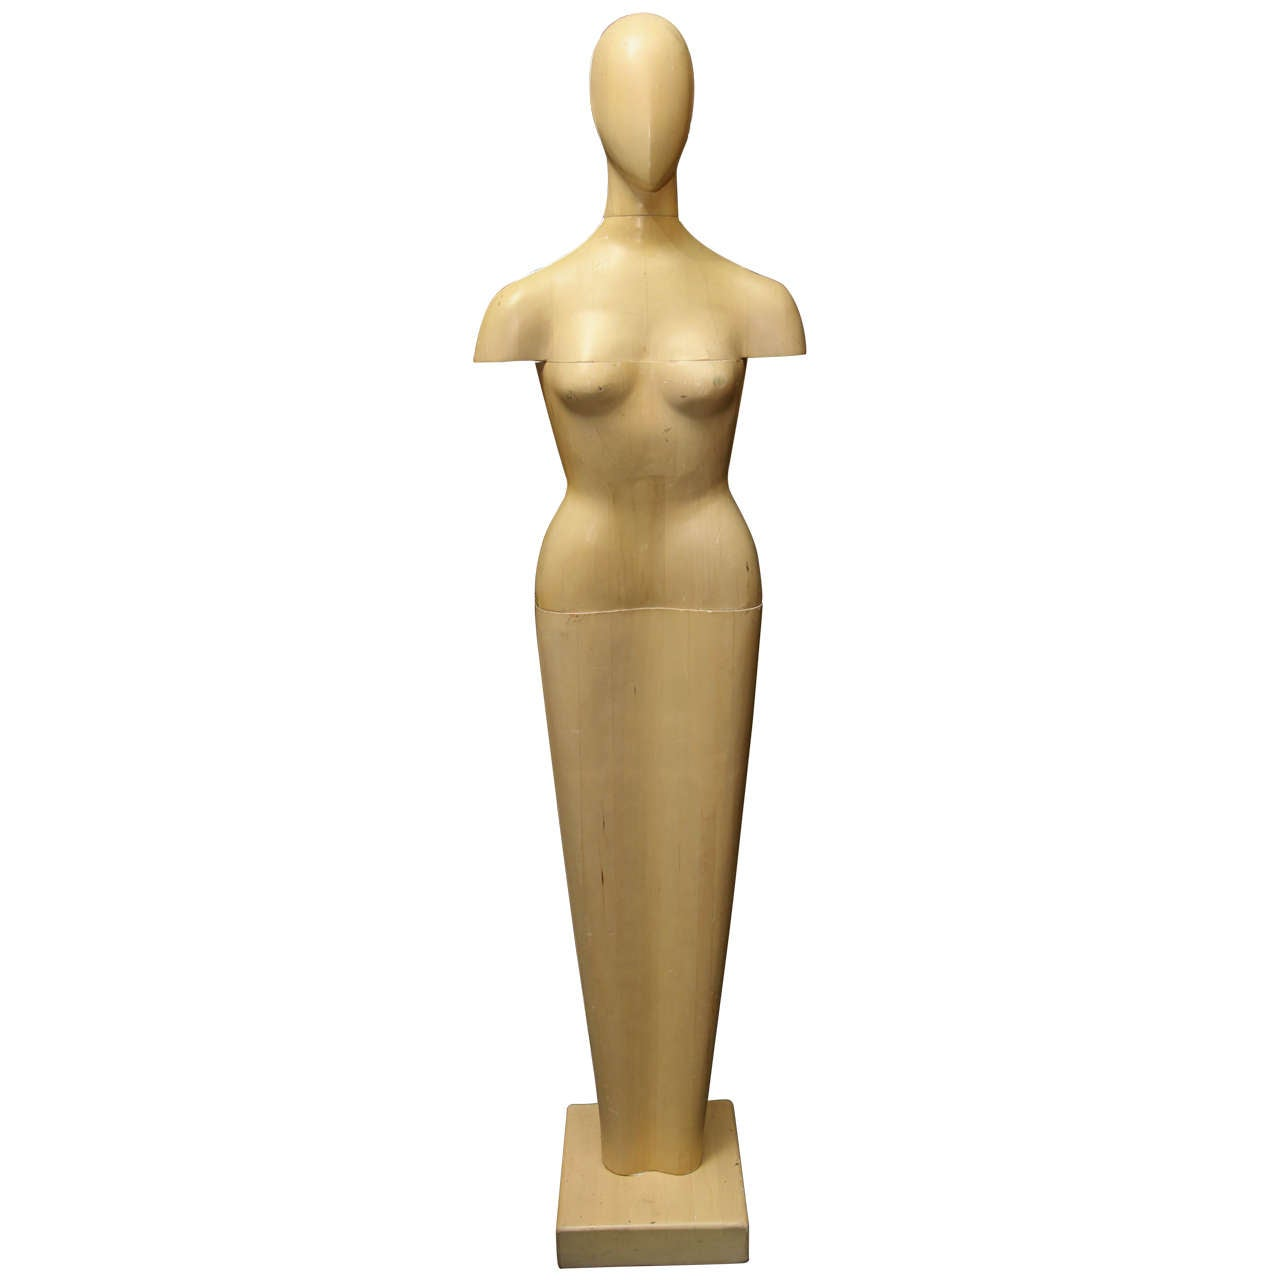 Life-Size Wood Sculpture of Female Form For Sale